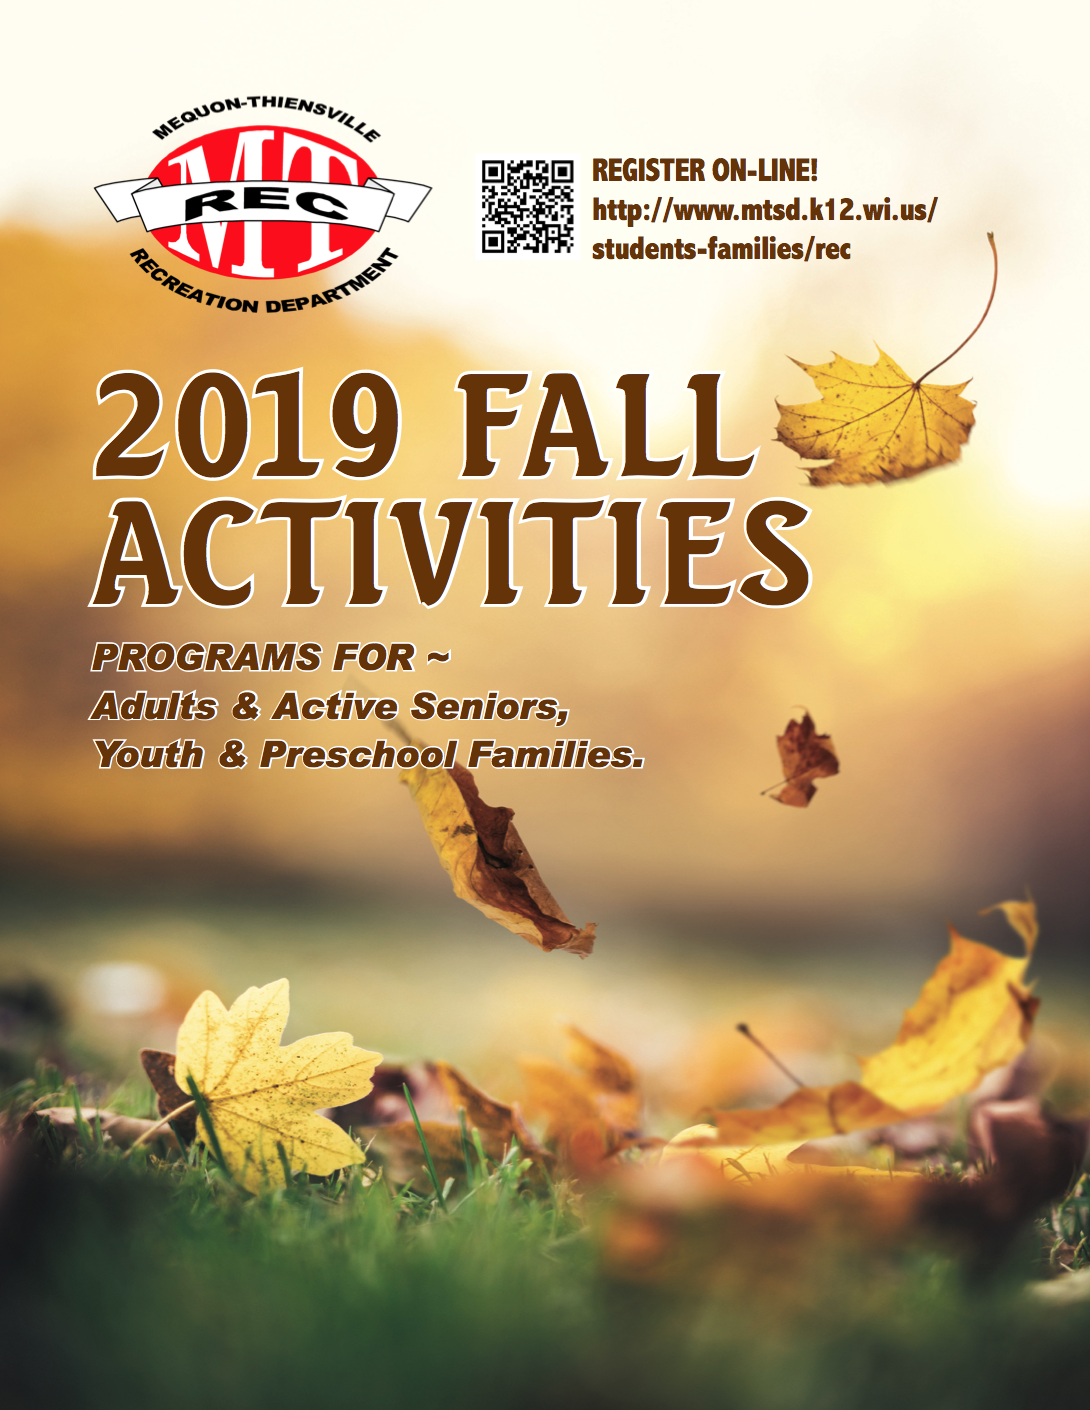 Fall 2019 Activity Guide